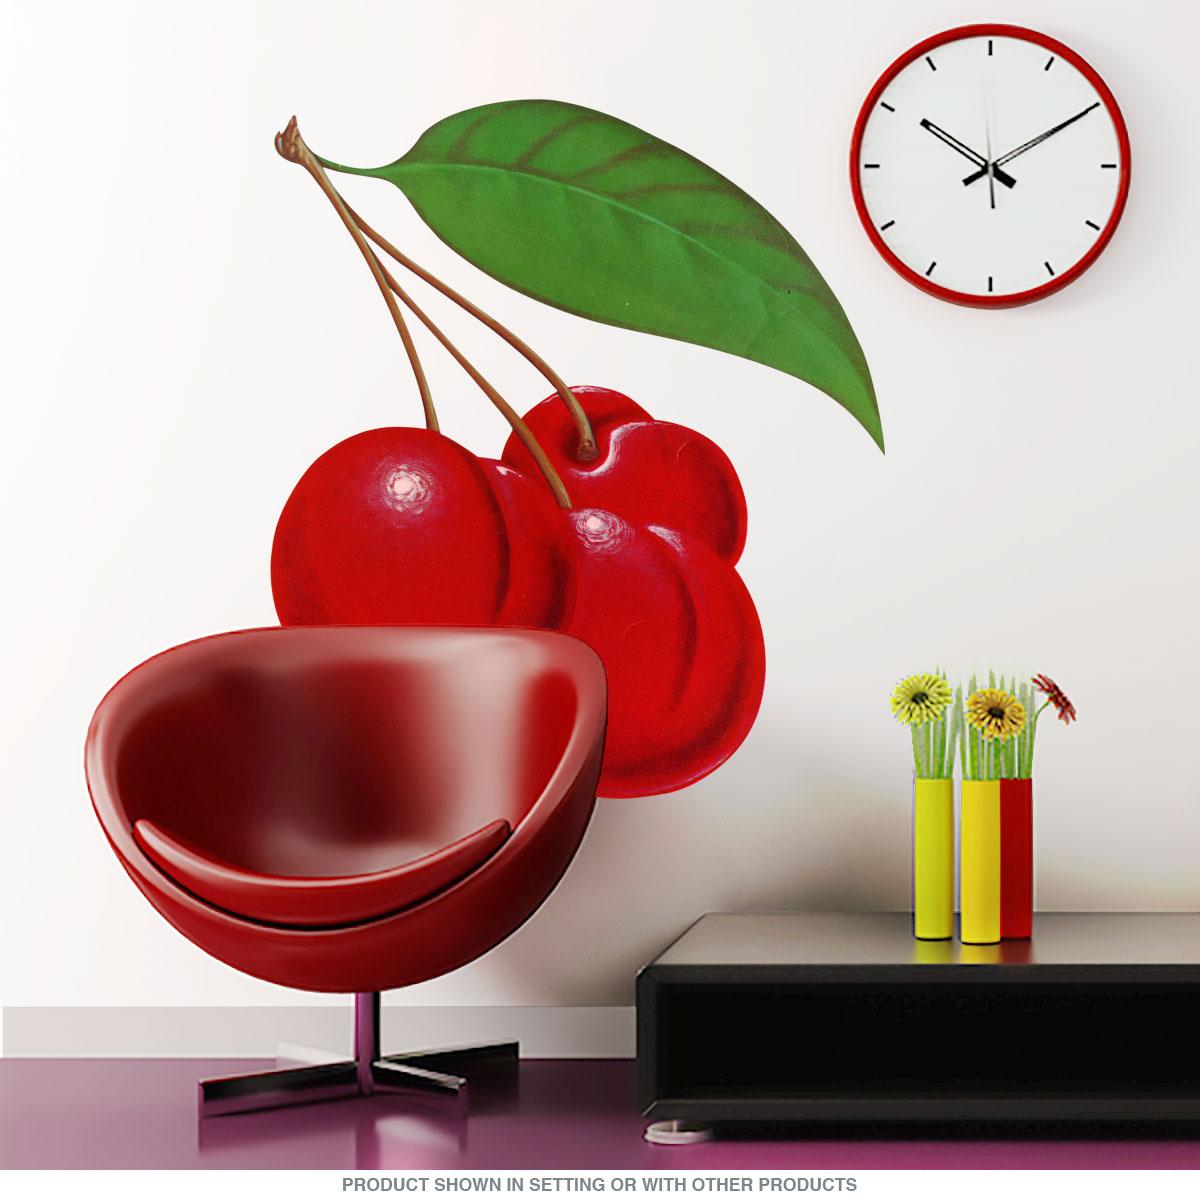 Cherries bunch fruit wall decal kitchen wall decor retroplanet cherries bunch fruit wall decal close amipublicfo Choice Image